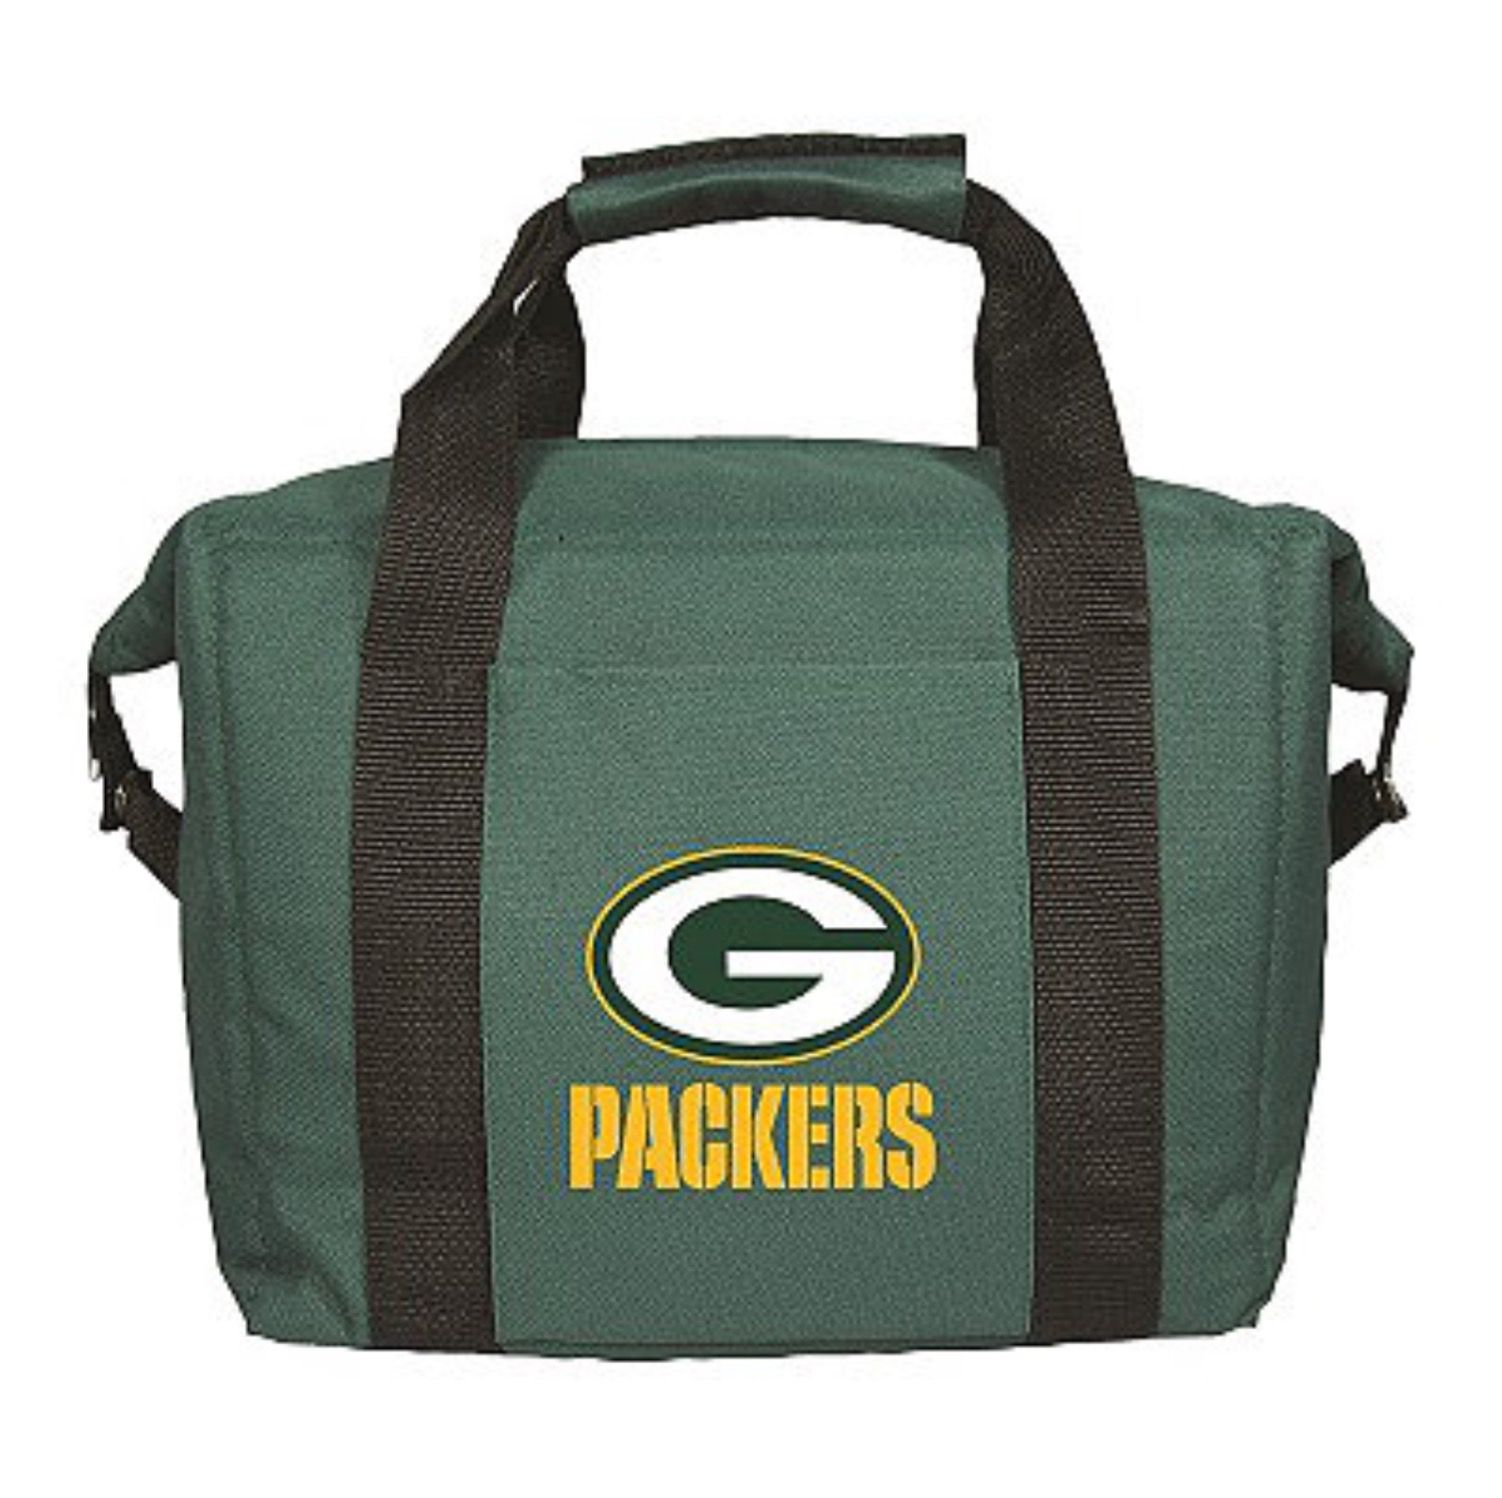 Game cooler bags -  New York Jets 12 Pack Kolder Cooler Bag Backorder